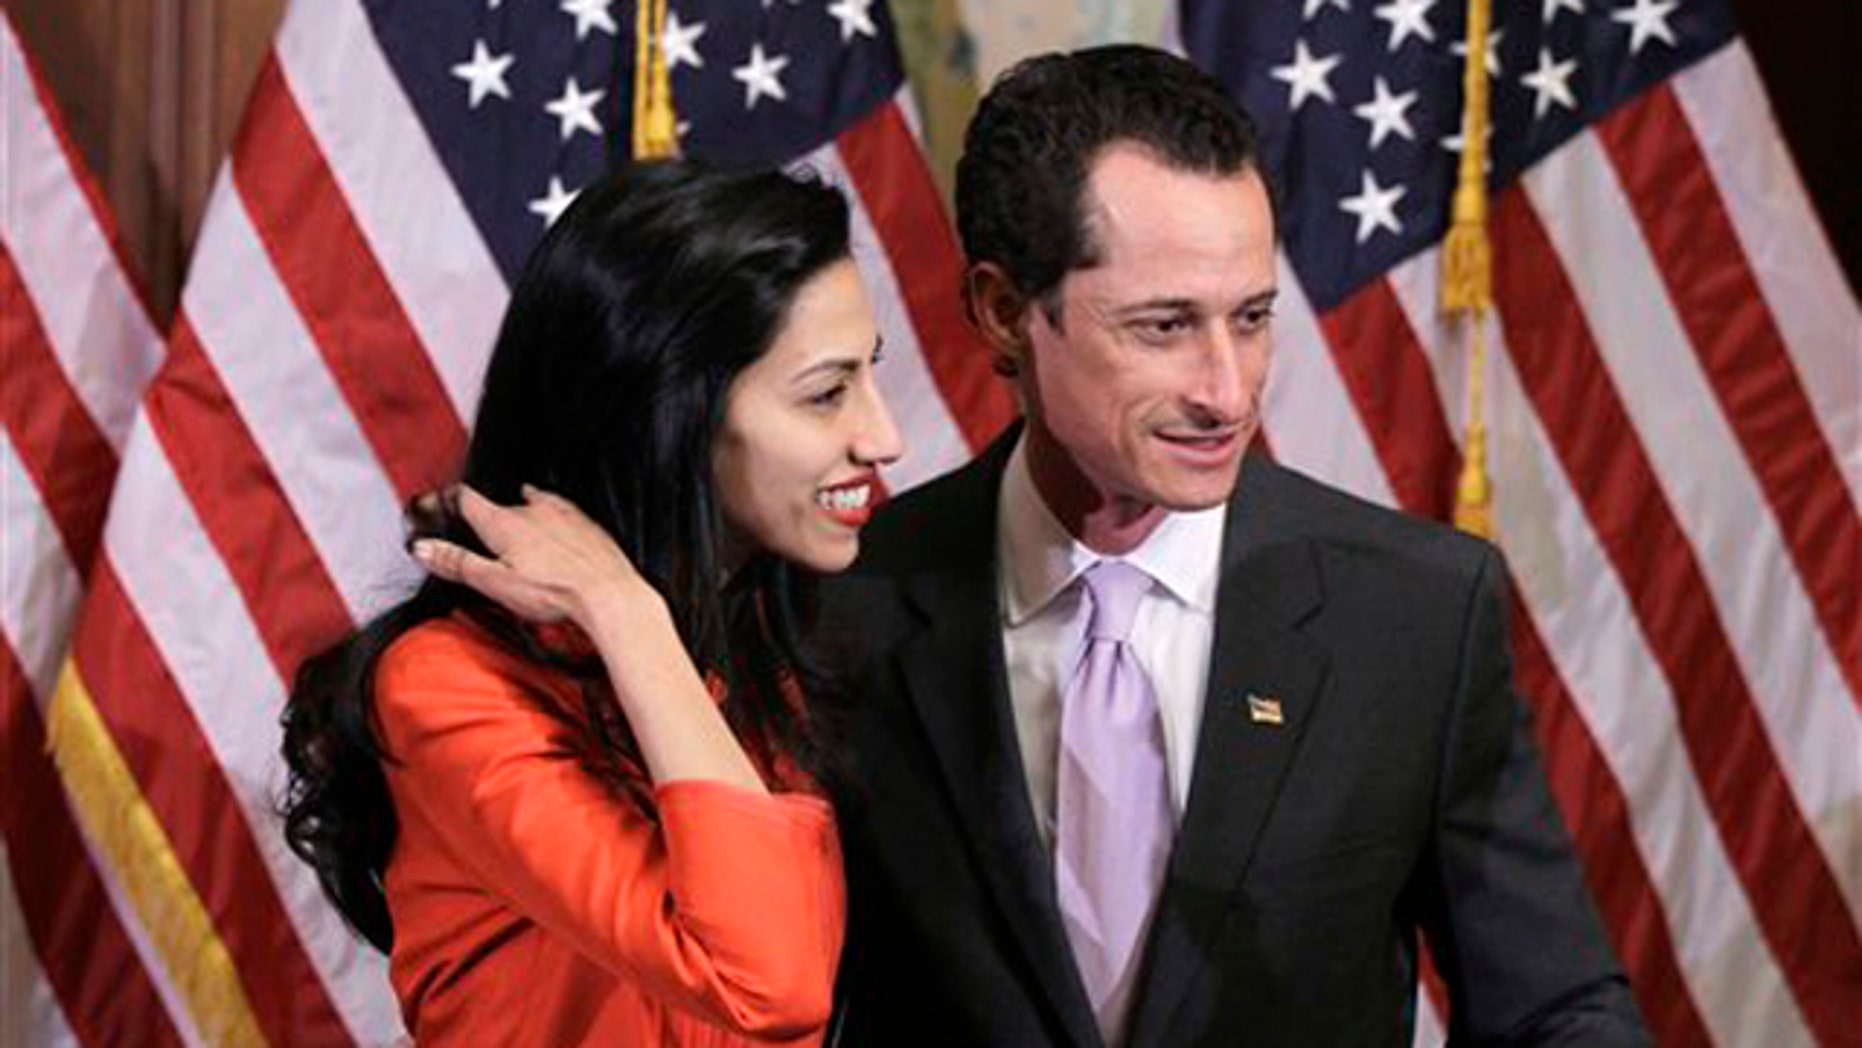 Rep. Anthony Weiner and his wife, Huma Abedin are pictured after a ceremonial swearing in of the 112th Congress on Capitol Hill in Washington in this Jan. 5 photo.